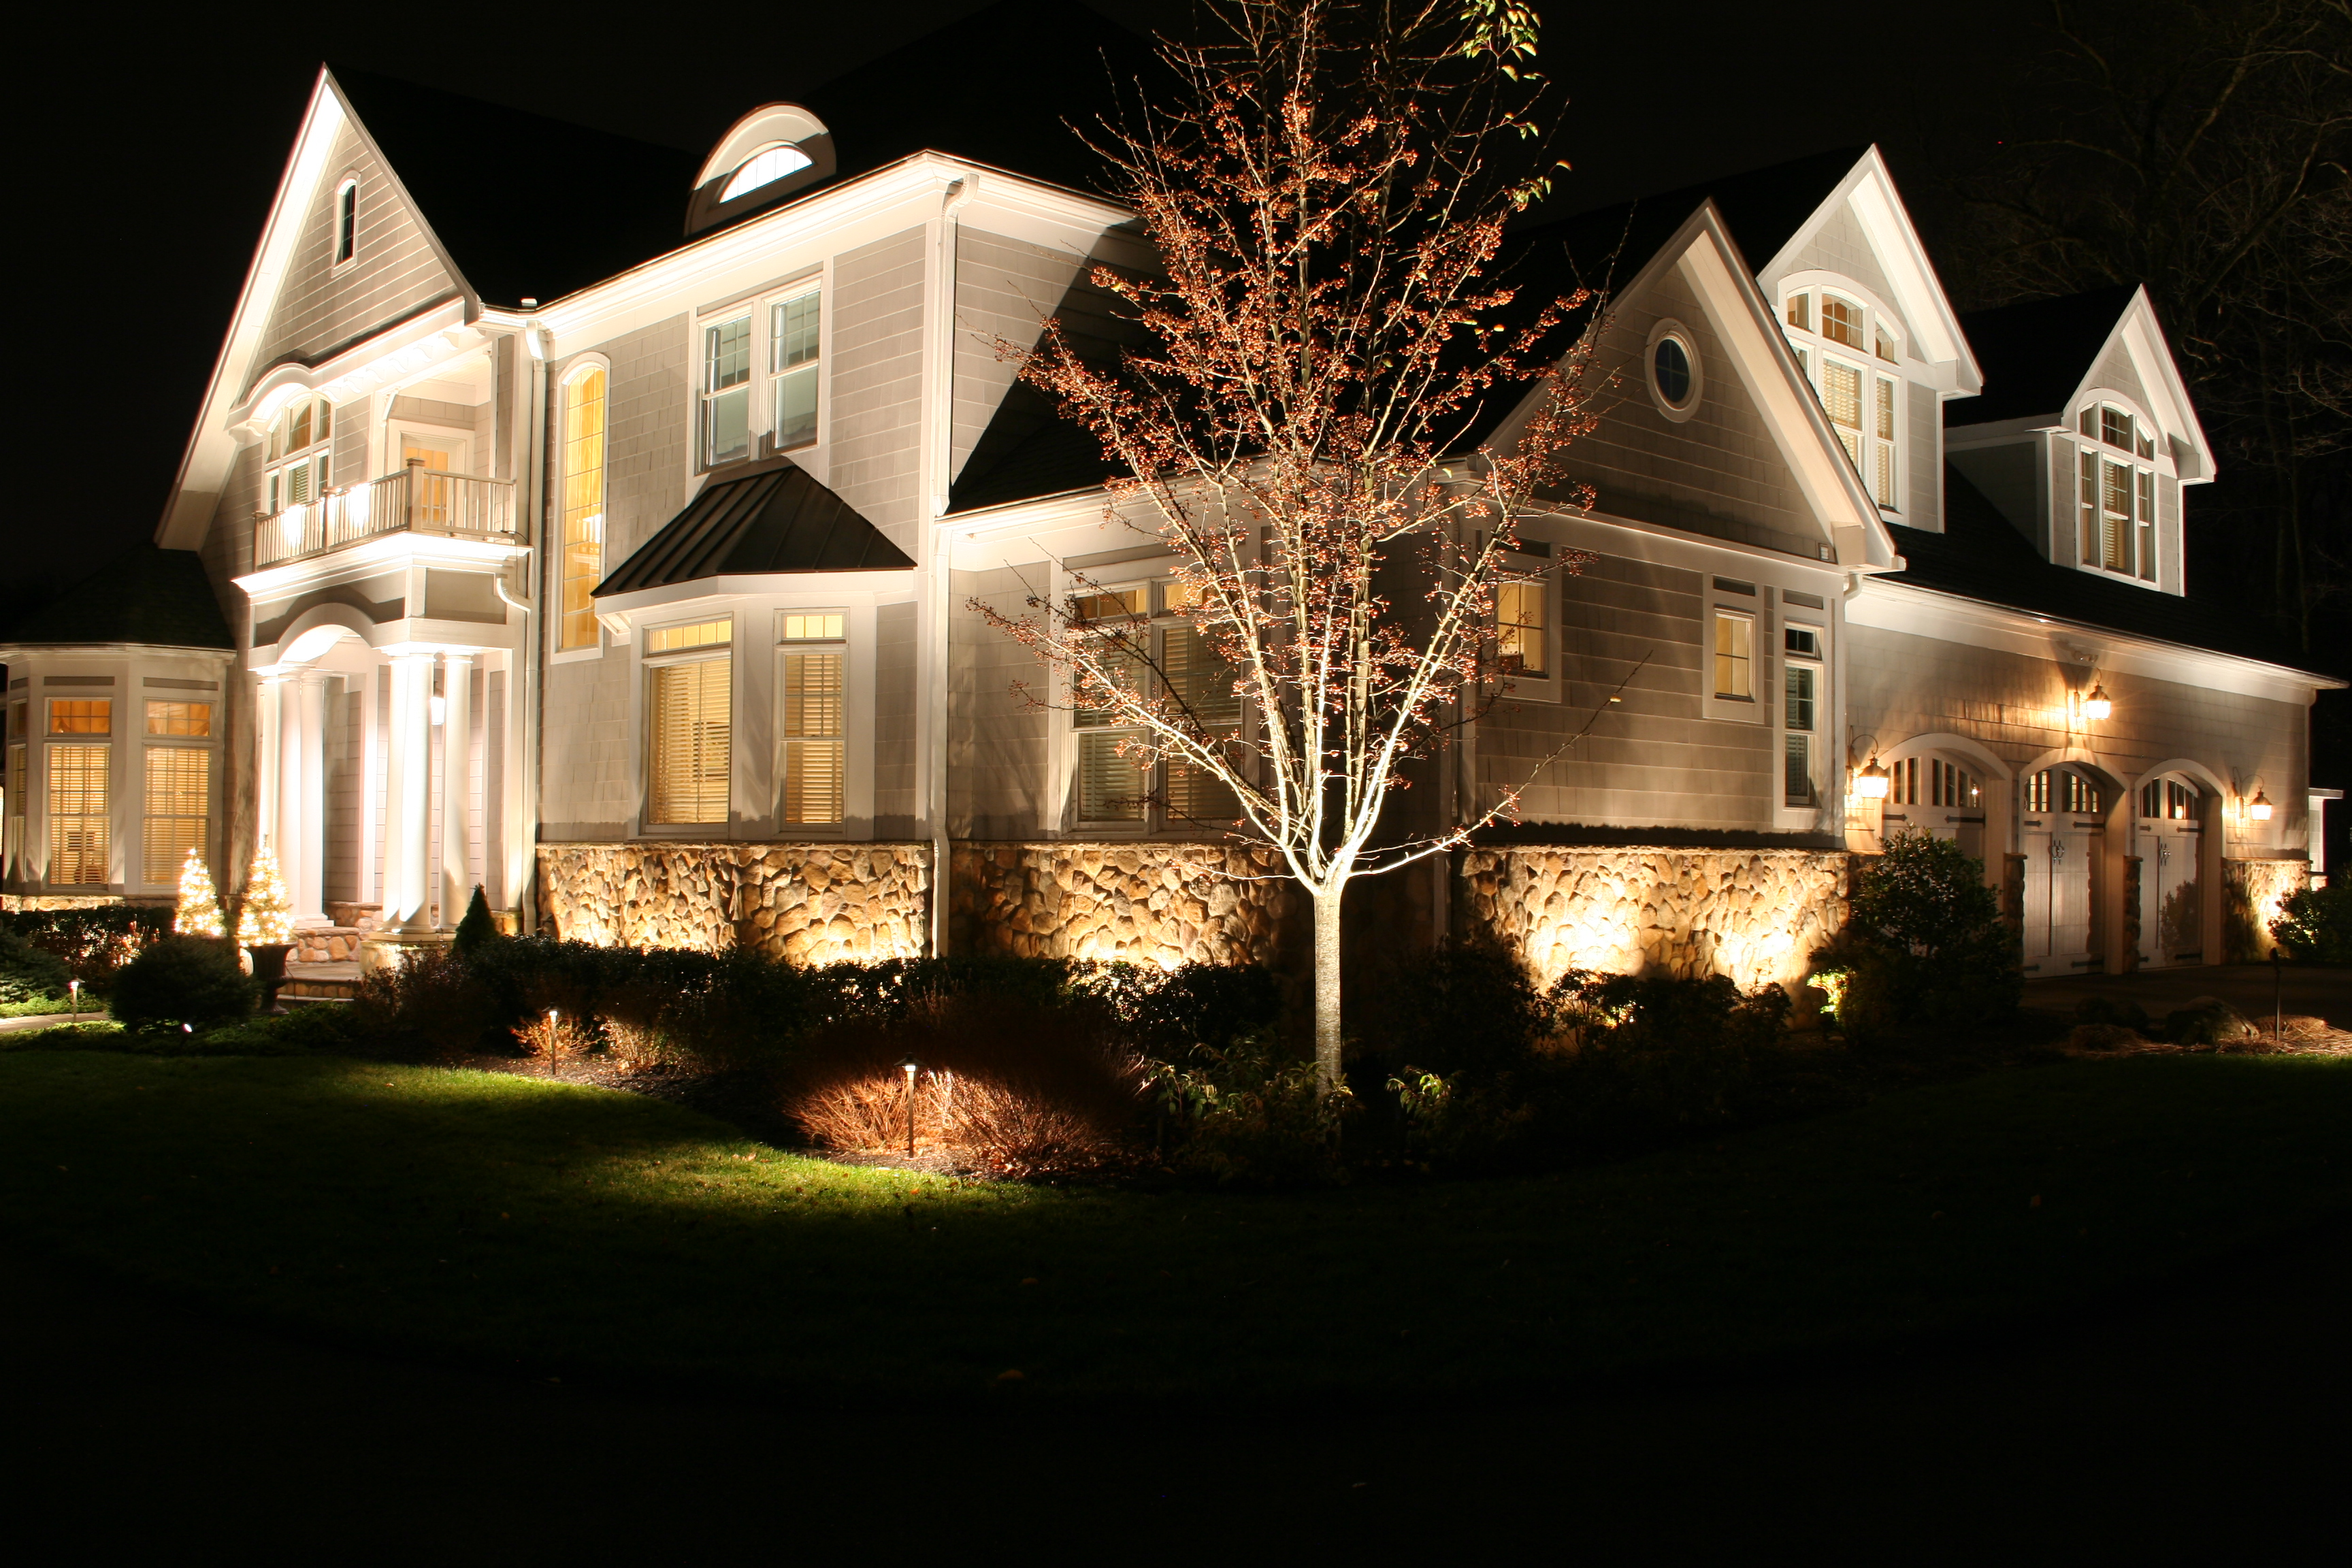 Landscape lighting designer michael gotowala shows us a night time our lighting approach is coupled with an evaluation of the landscape and many times we add elements islands focal plants and trees to create depth in the mozeypictures Image collections